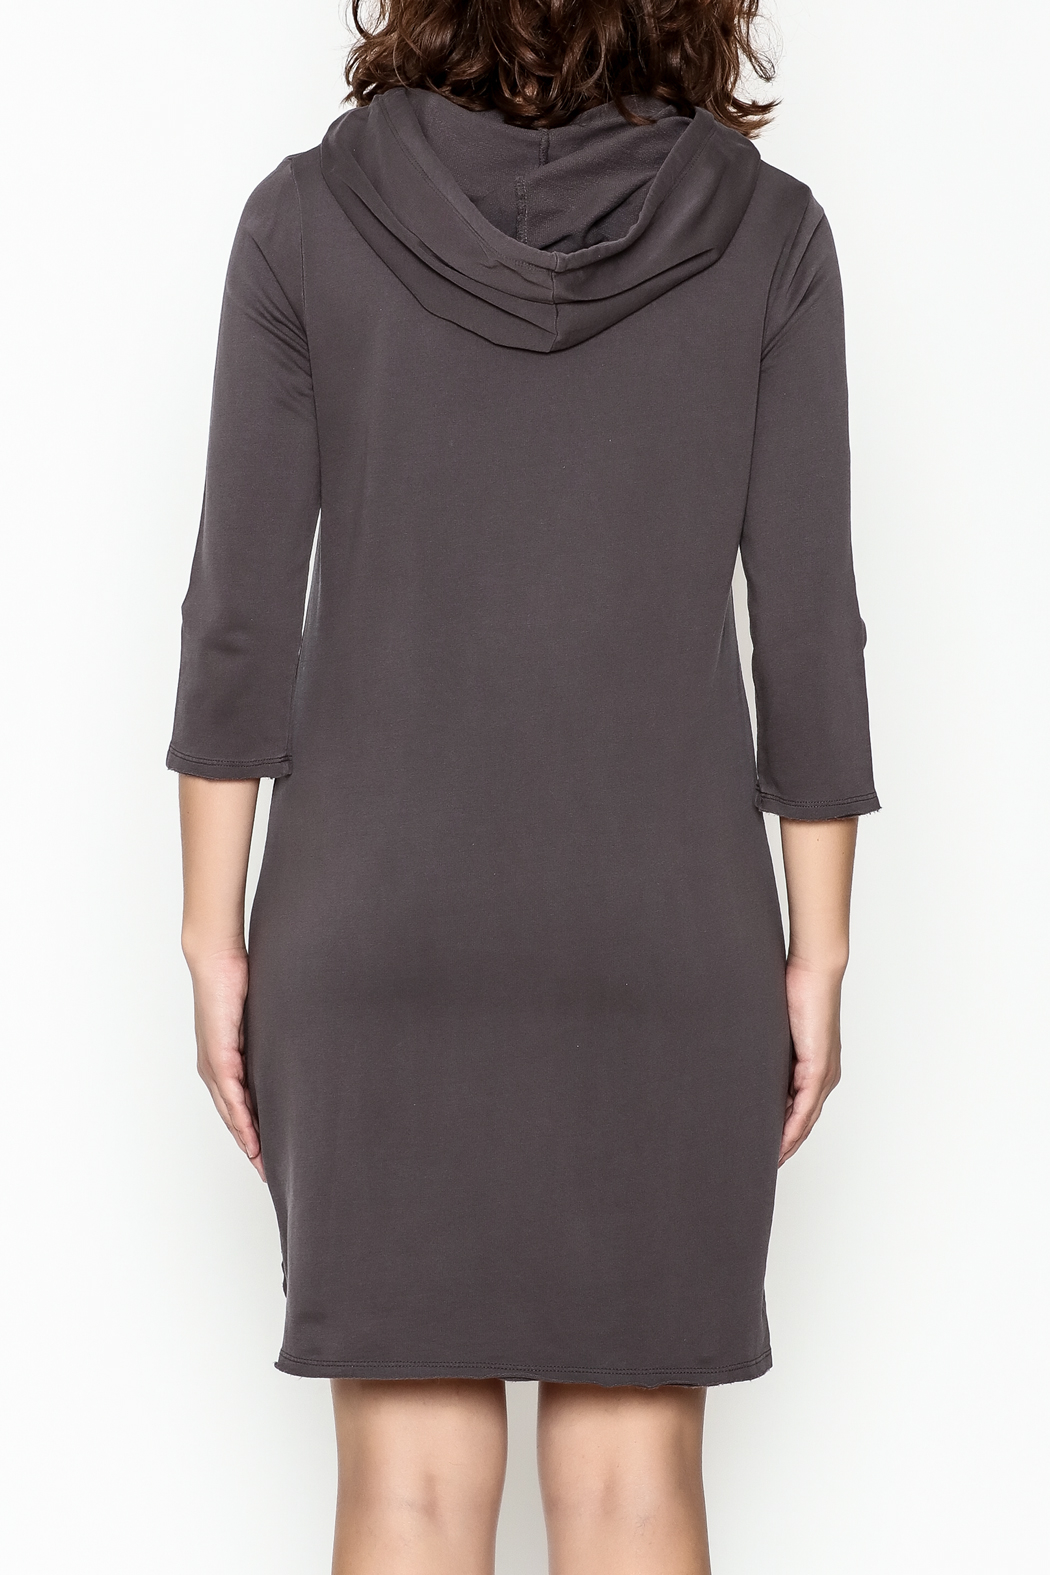 Others Follow  Hooded Pocket Tunic Dress - Back Cropped Image